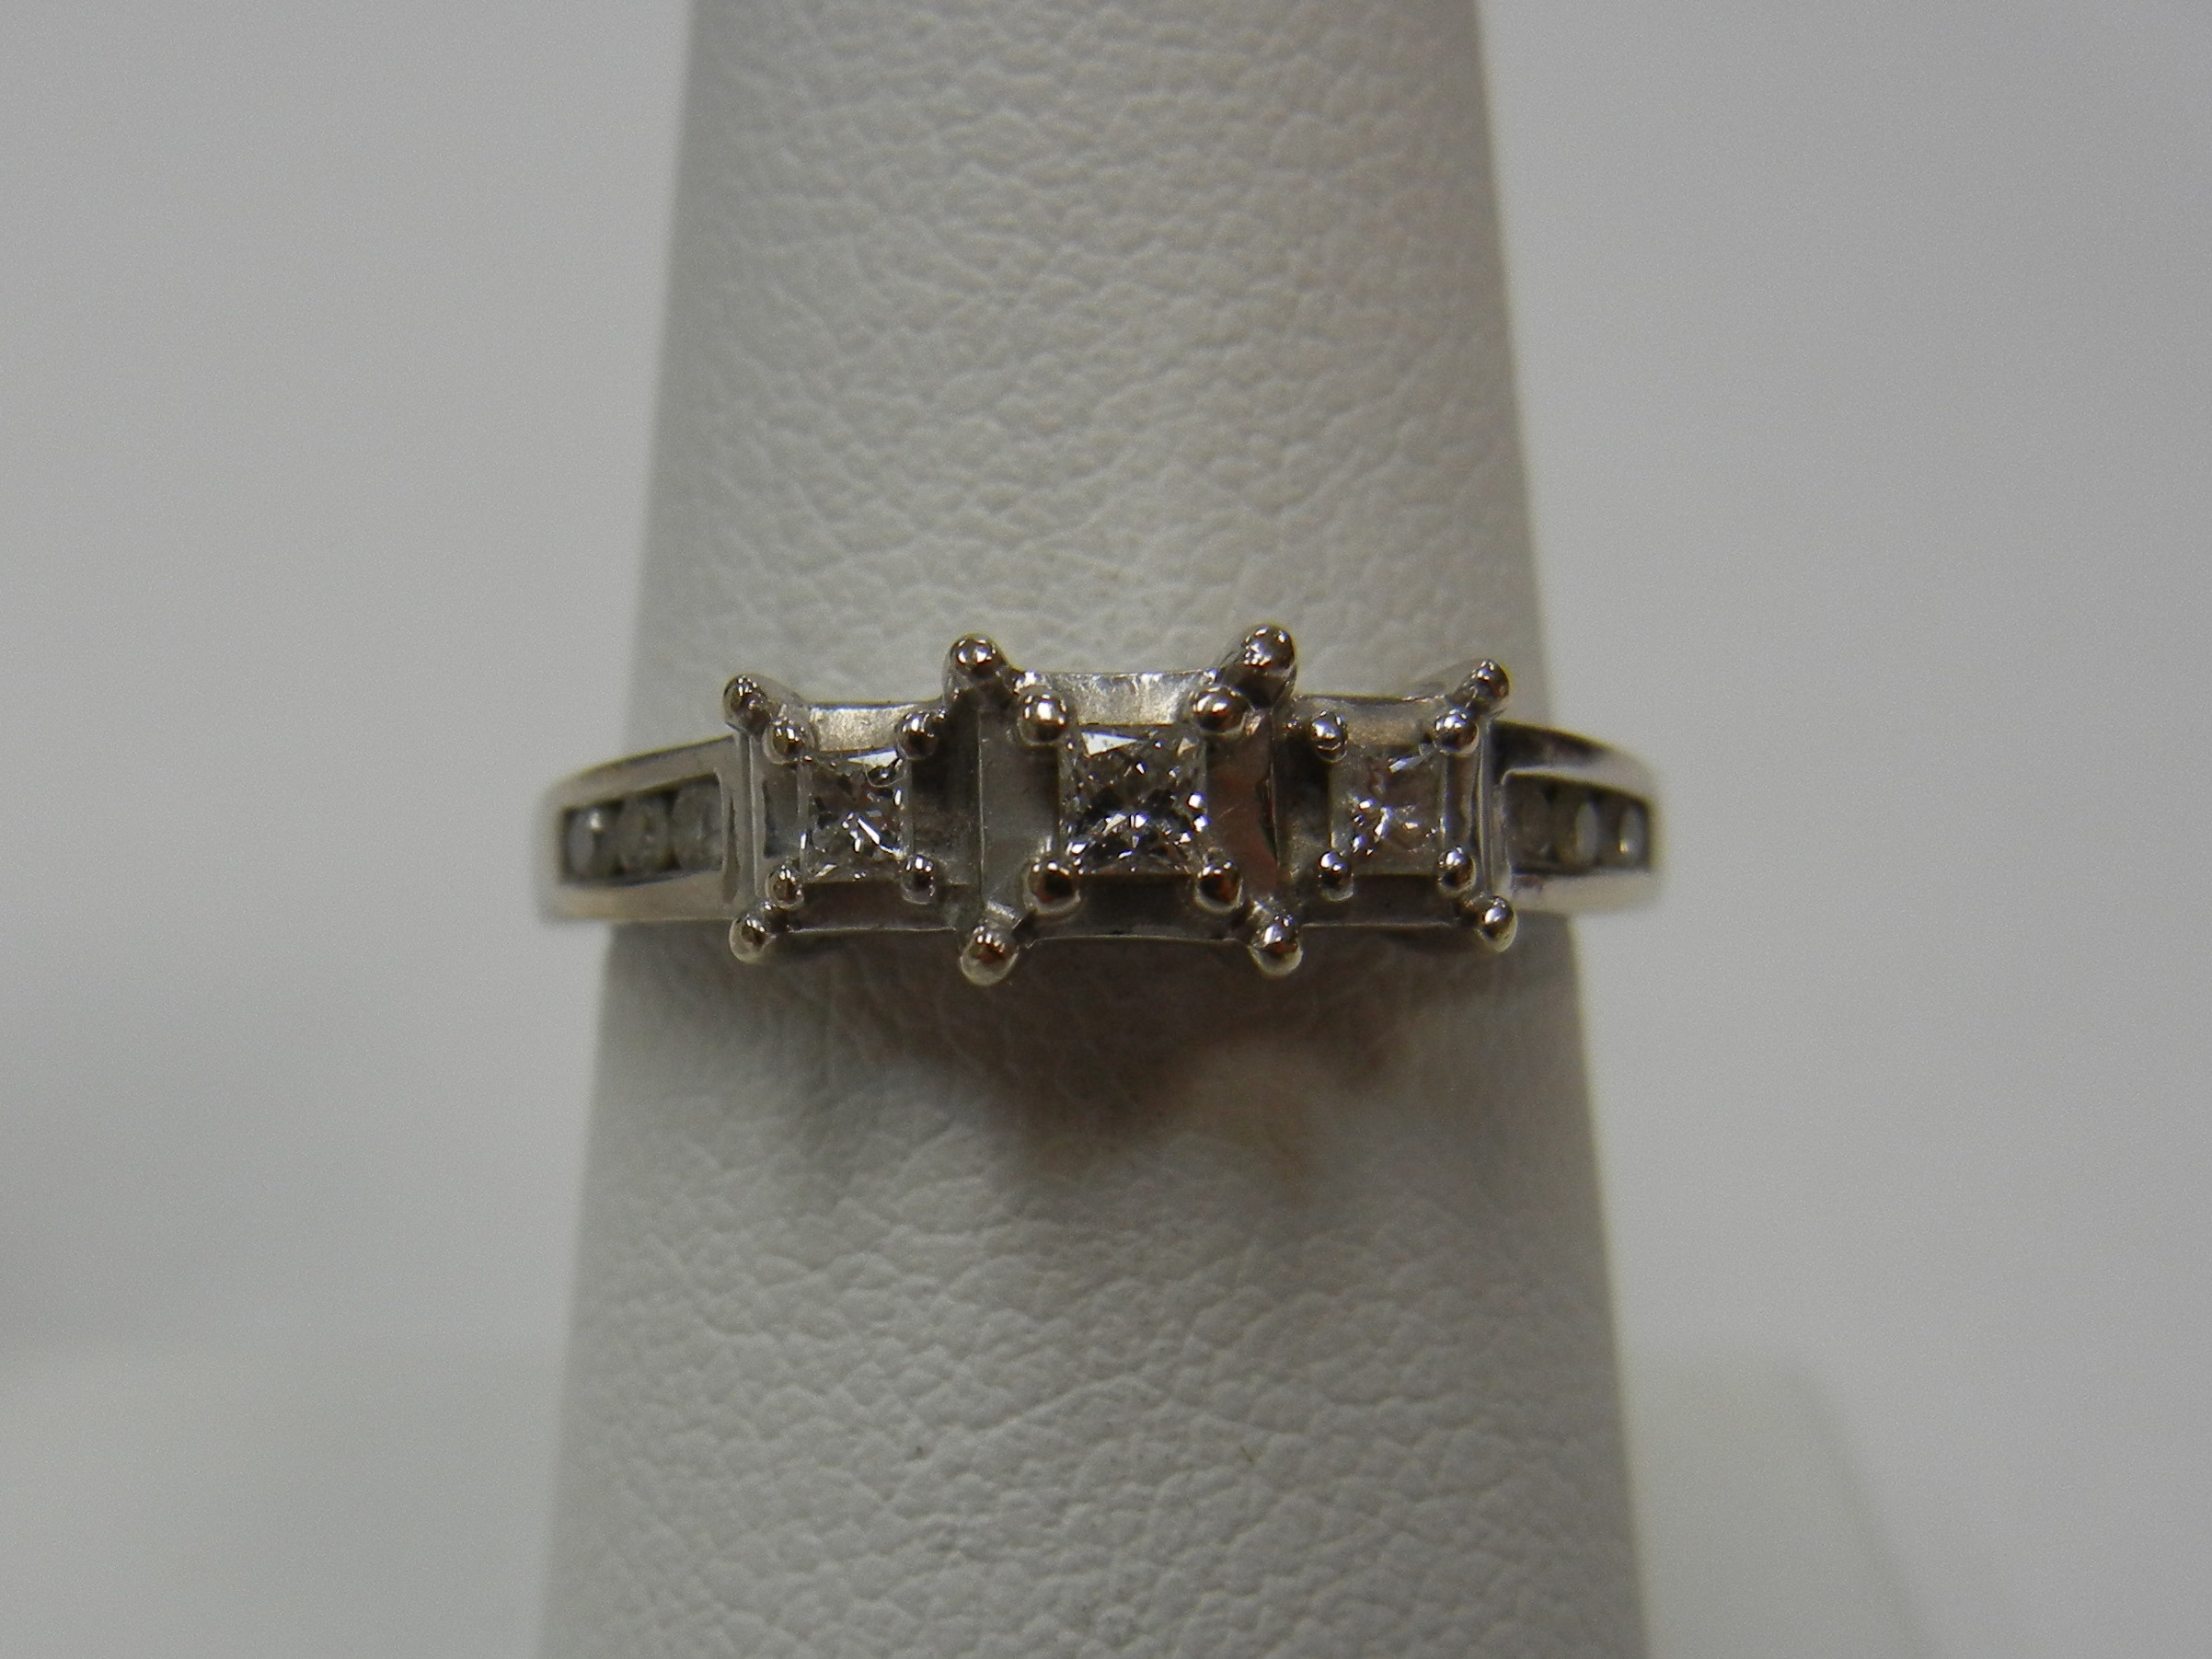 14 KT WHITE GOLD VINTAGE PAST PRESENT FUTURE RING - SIZE 7